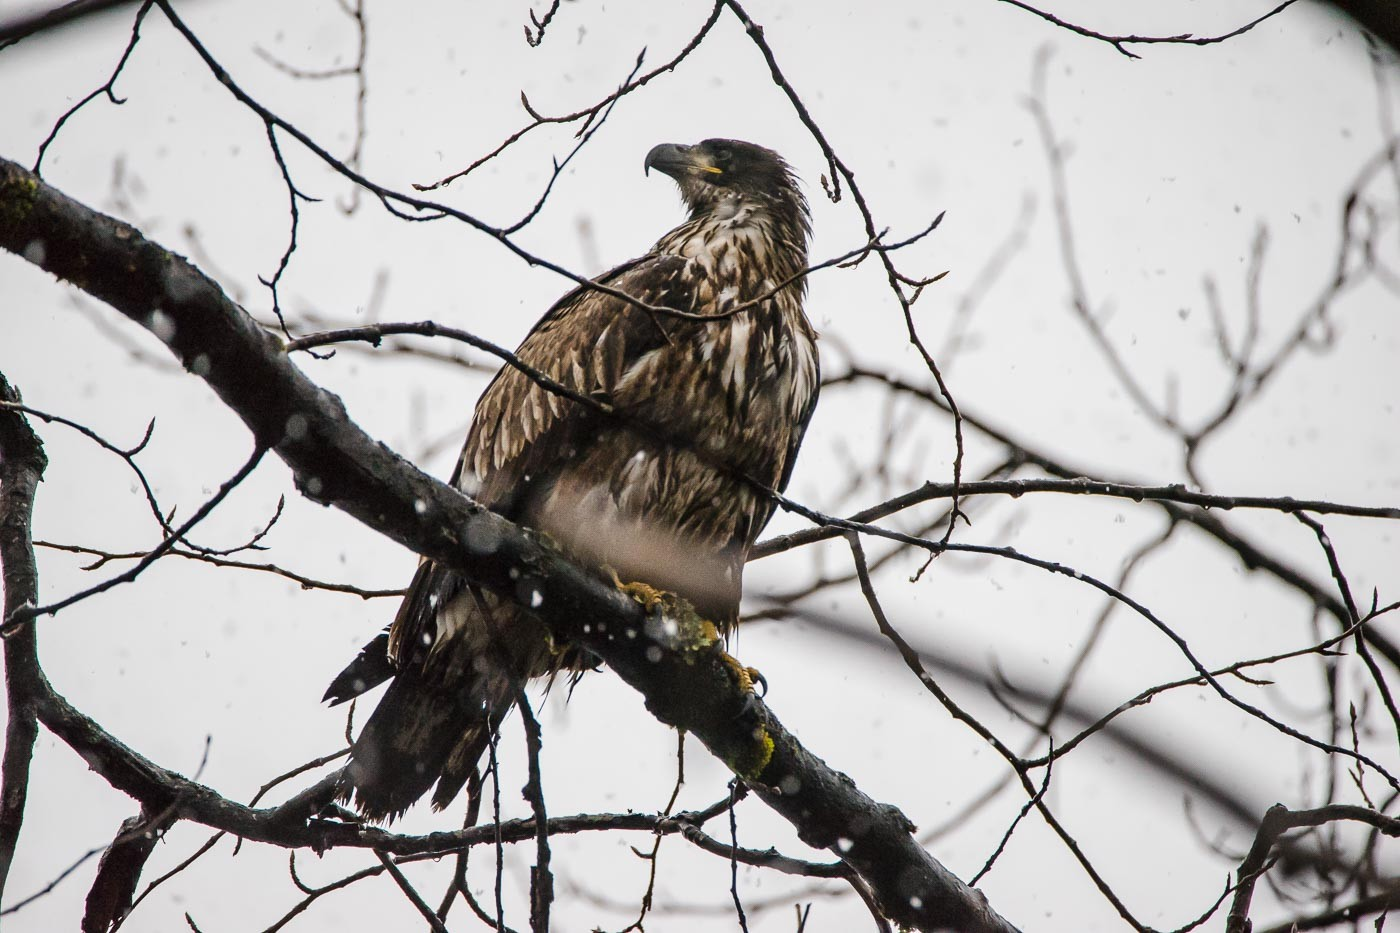 Juvenile Bald Eagle in Alaska with the Tamron 150-600mm f/5-6.3